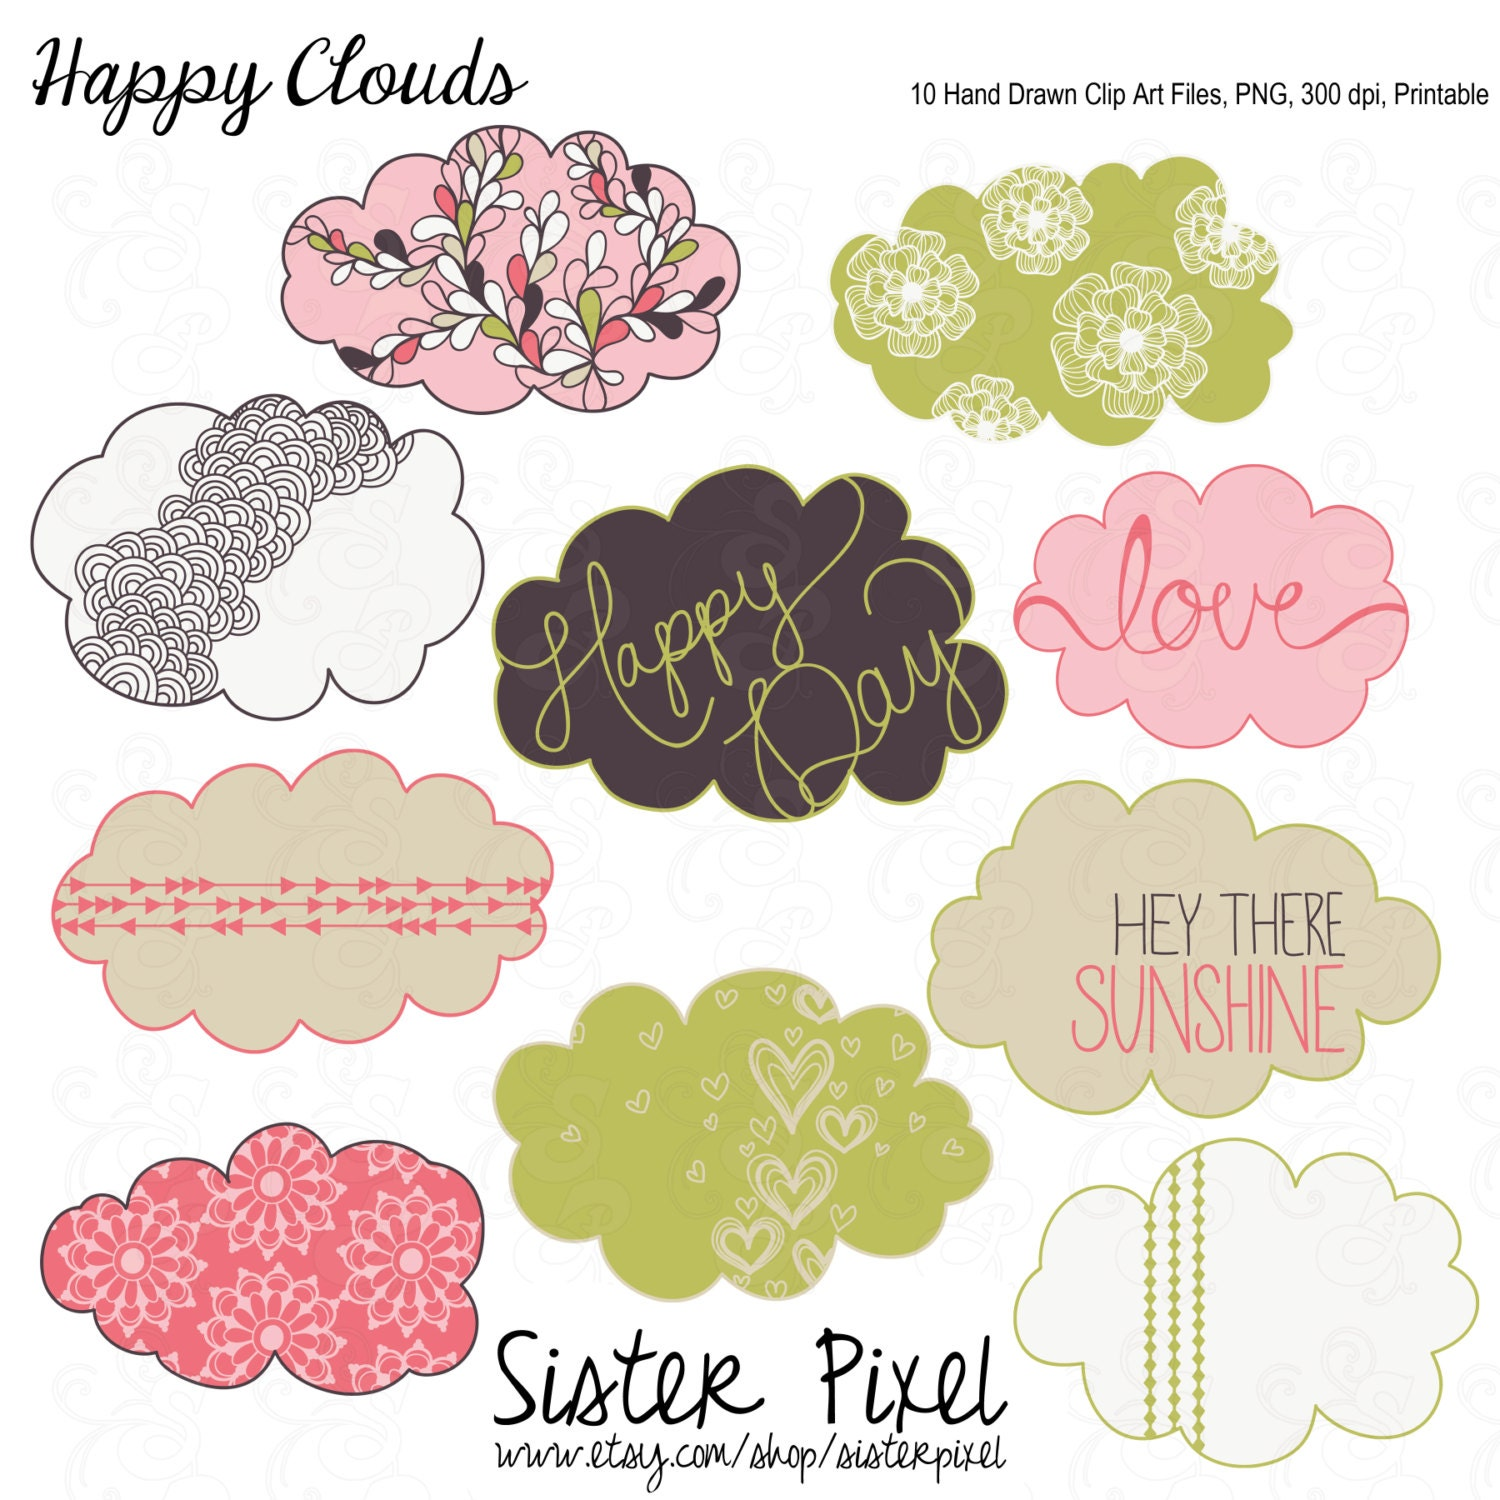 ... : Cloud Clip Art Outline , Sun Clip Art , Smiling Cloud Clip Art